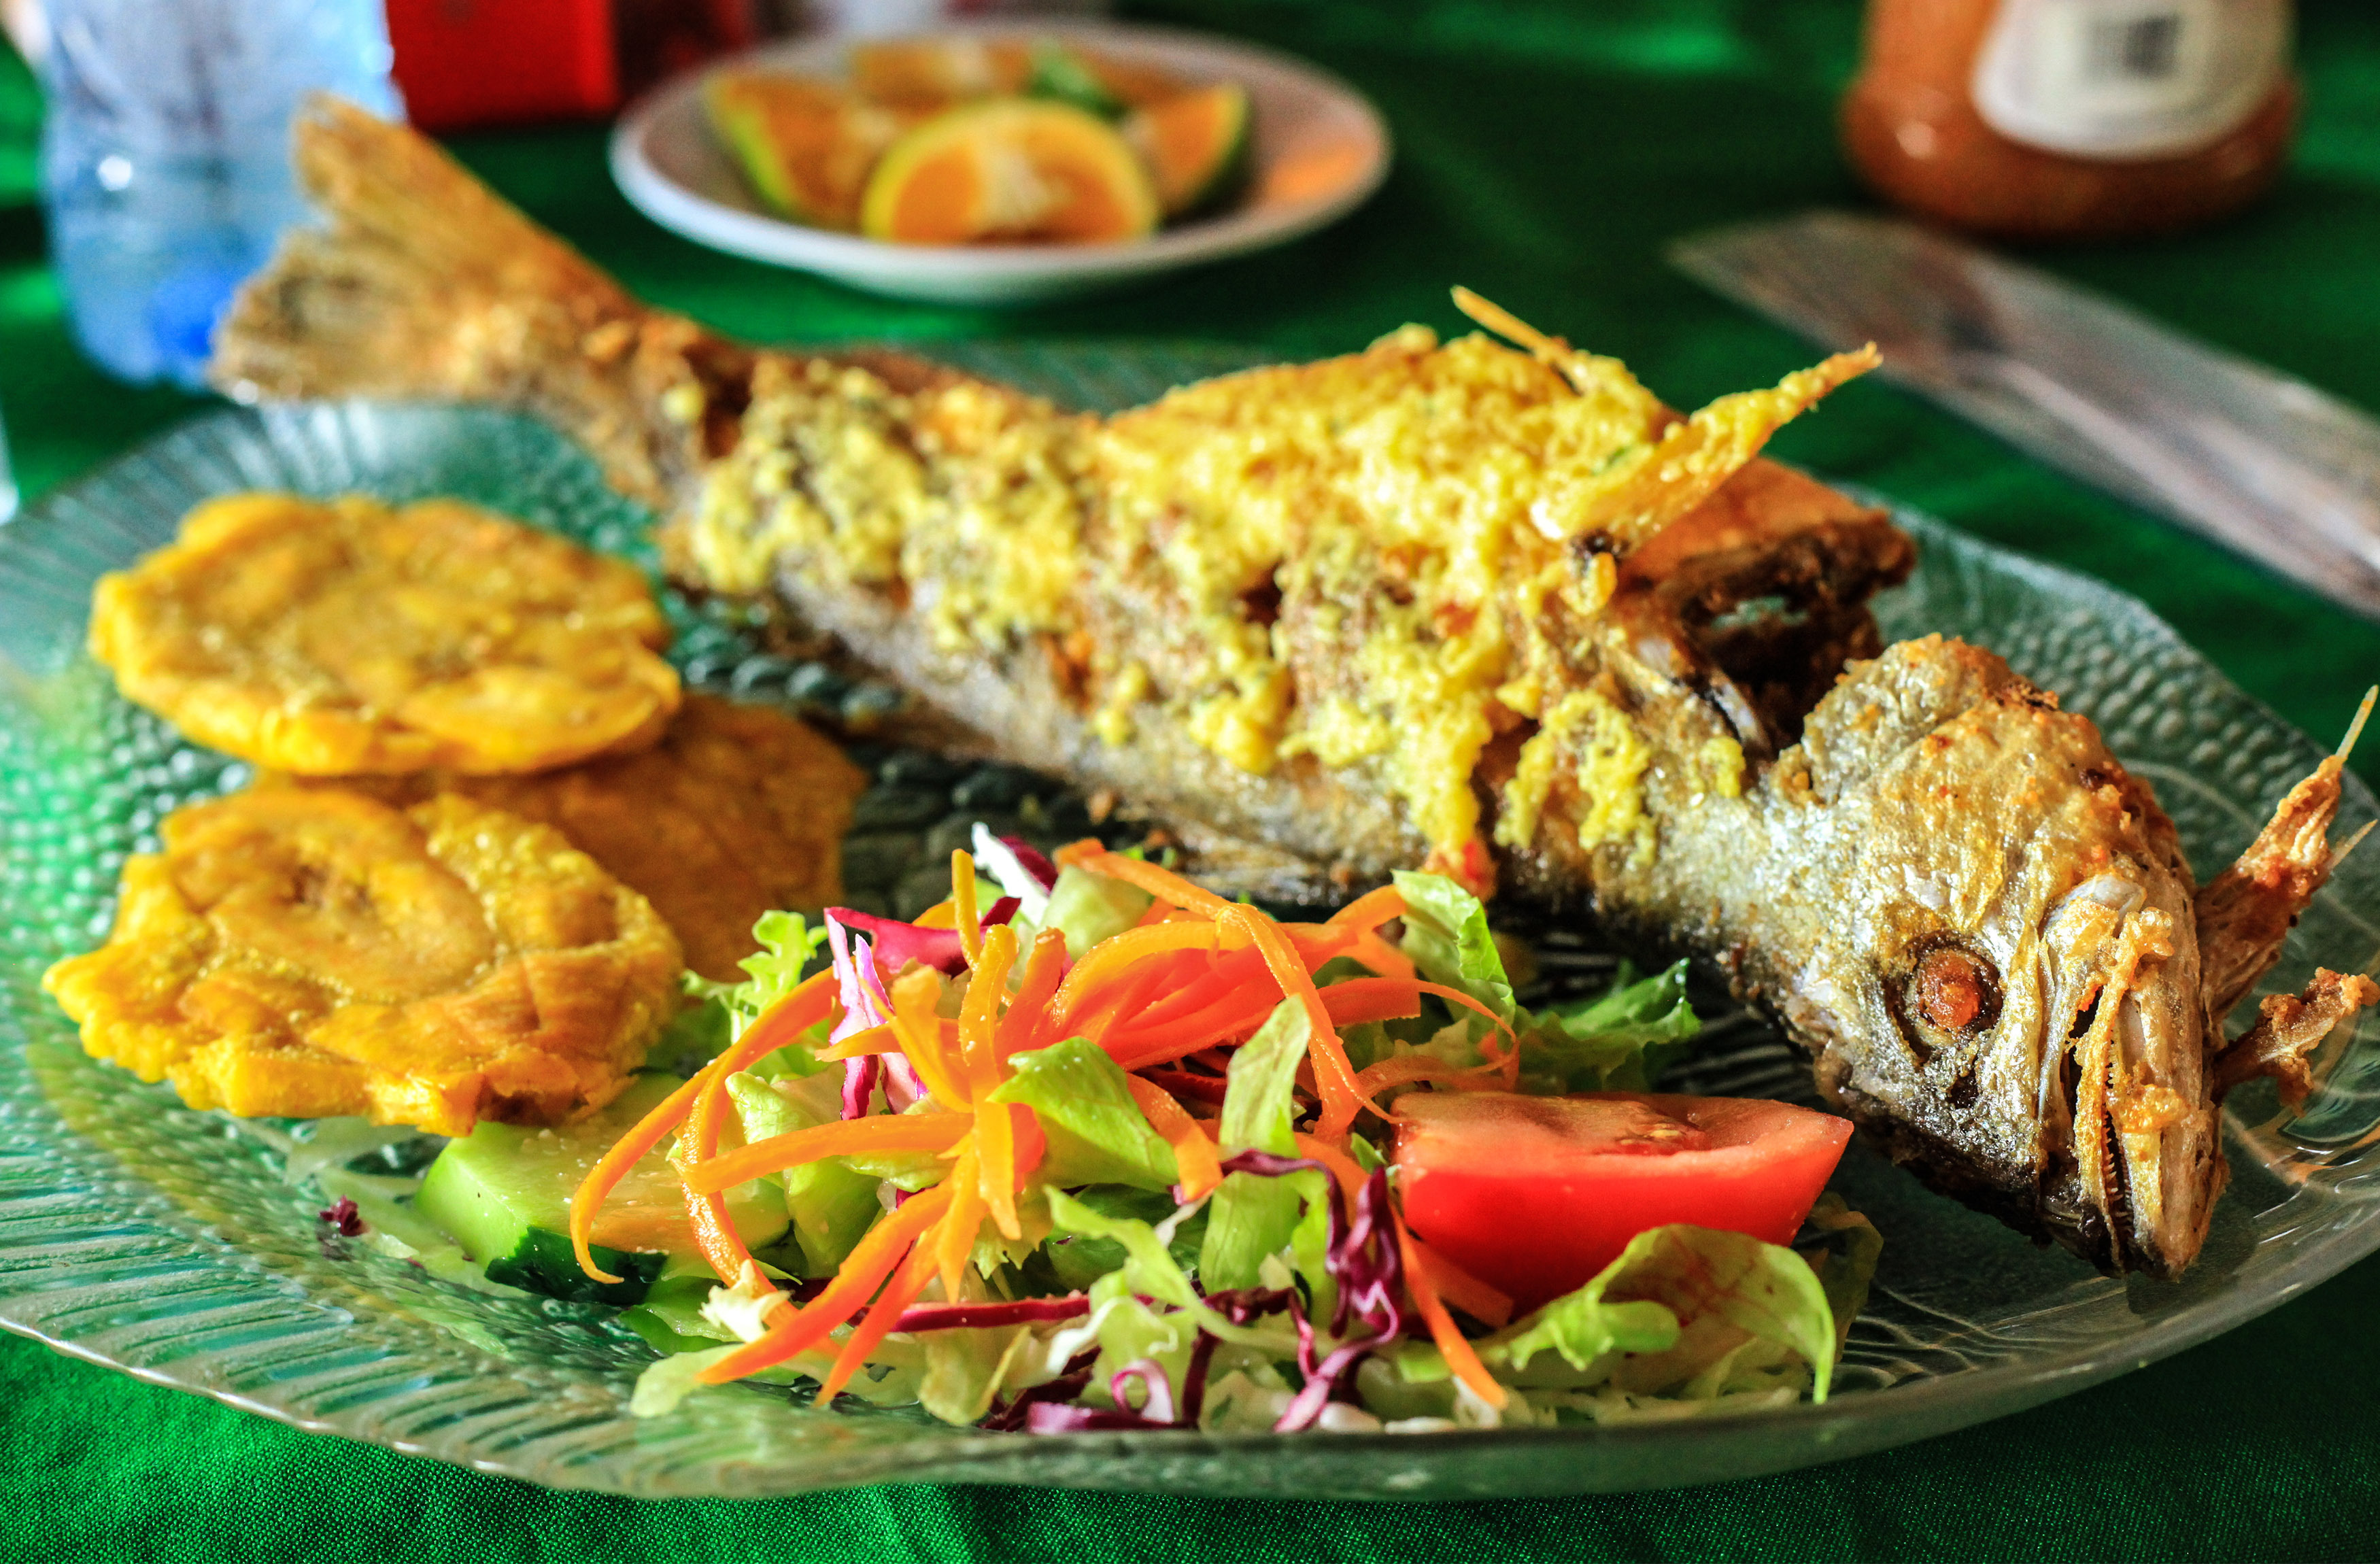 Whole fried fish with salad